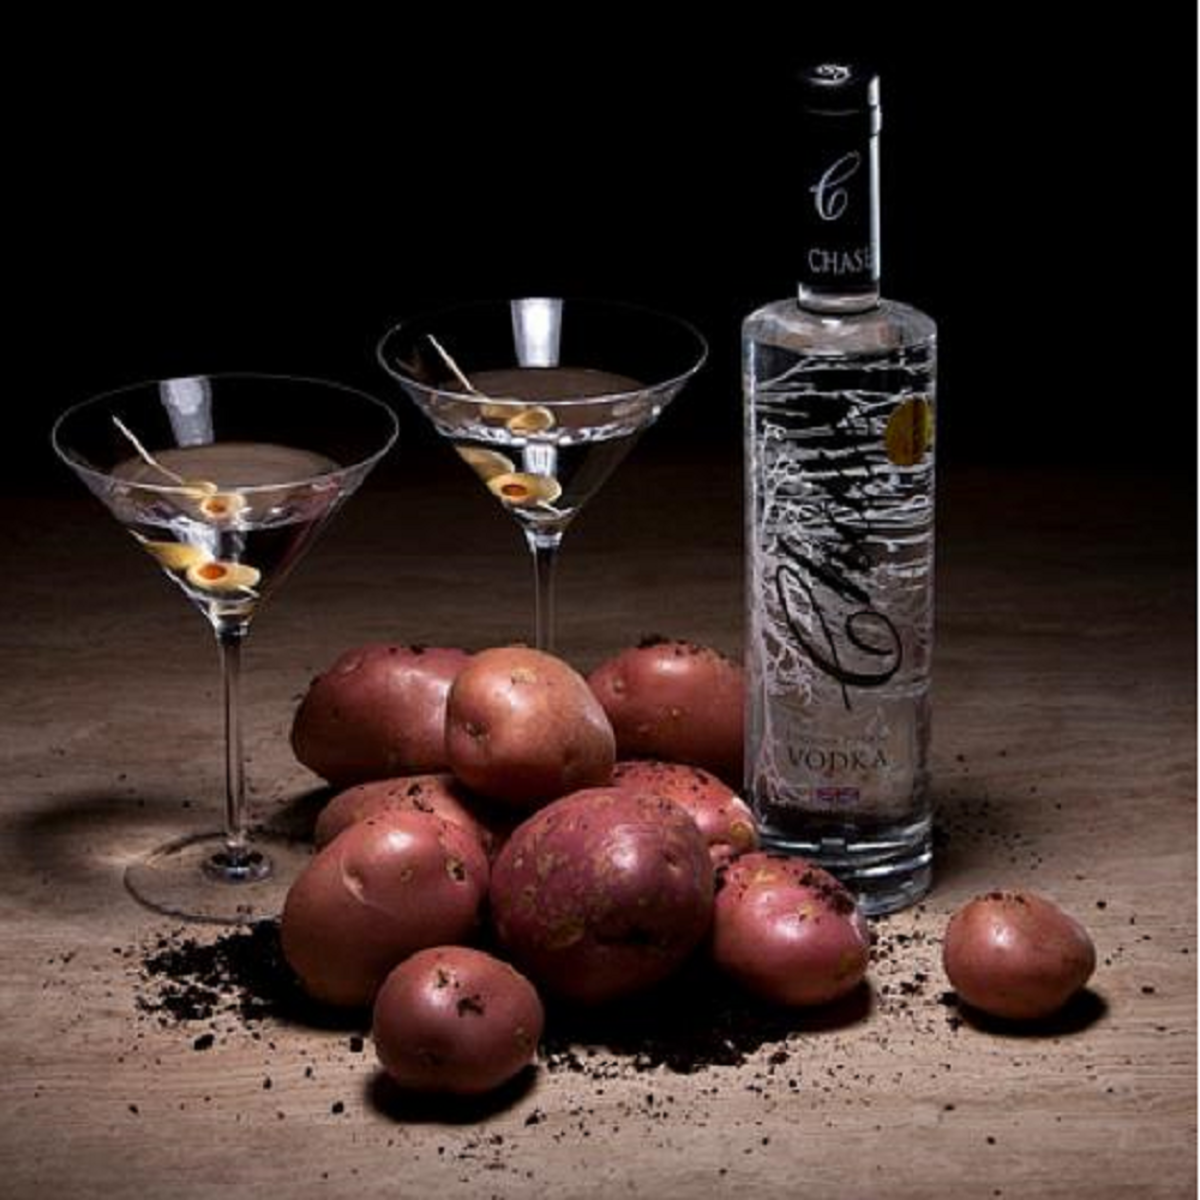 How To Make Your Own Vodka Using Potatoes | HubPages